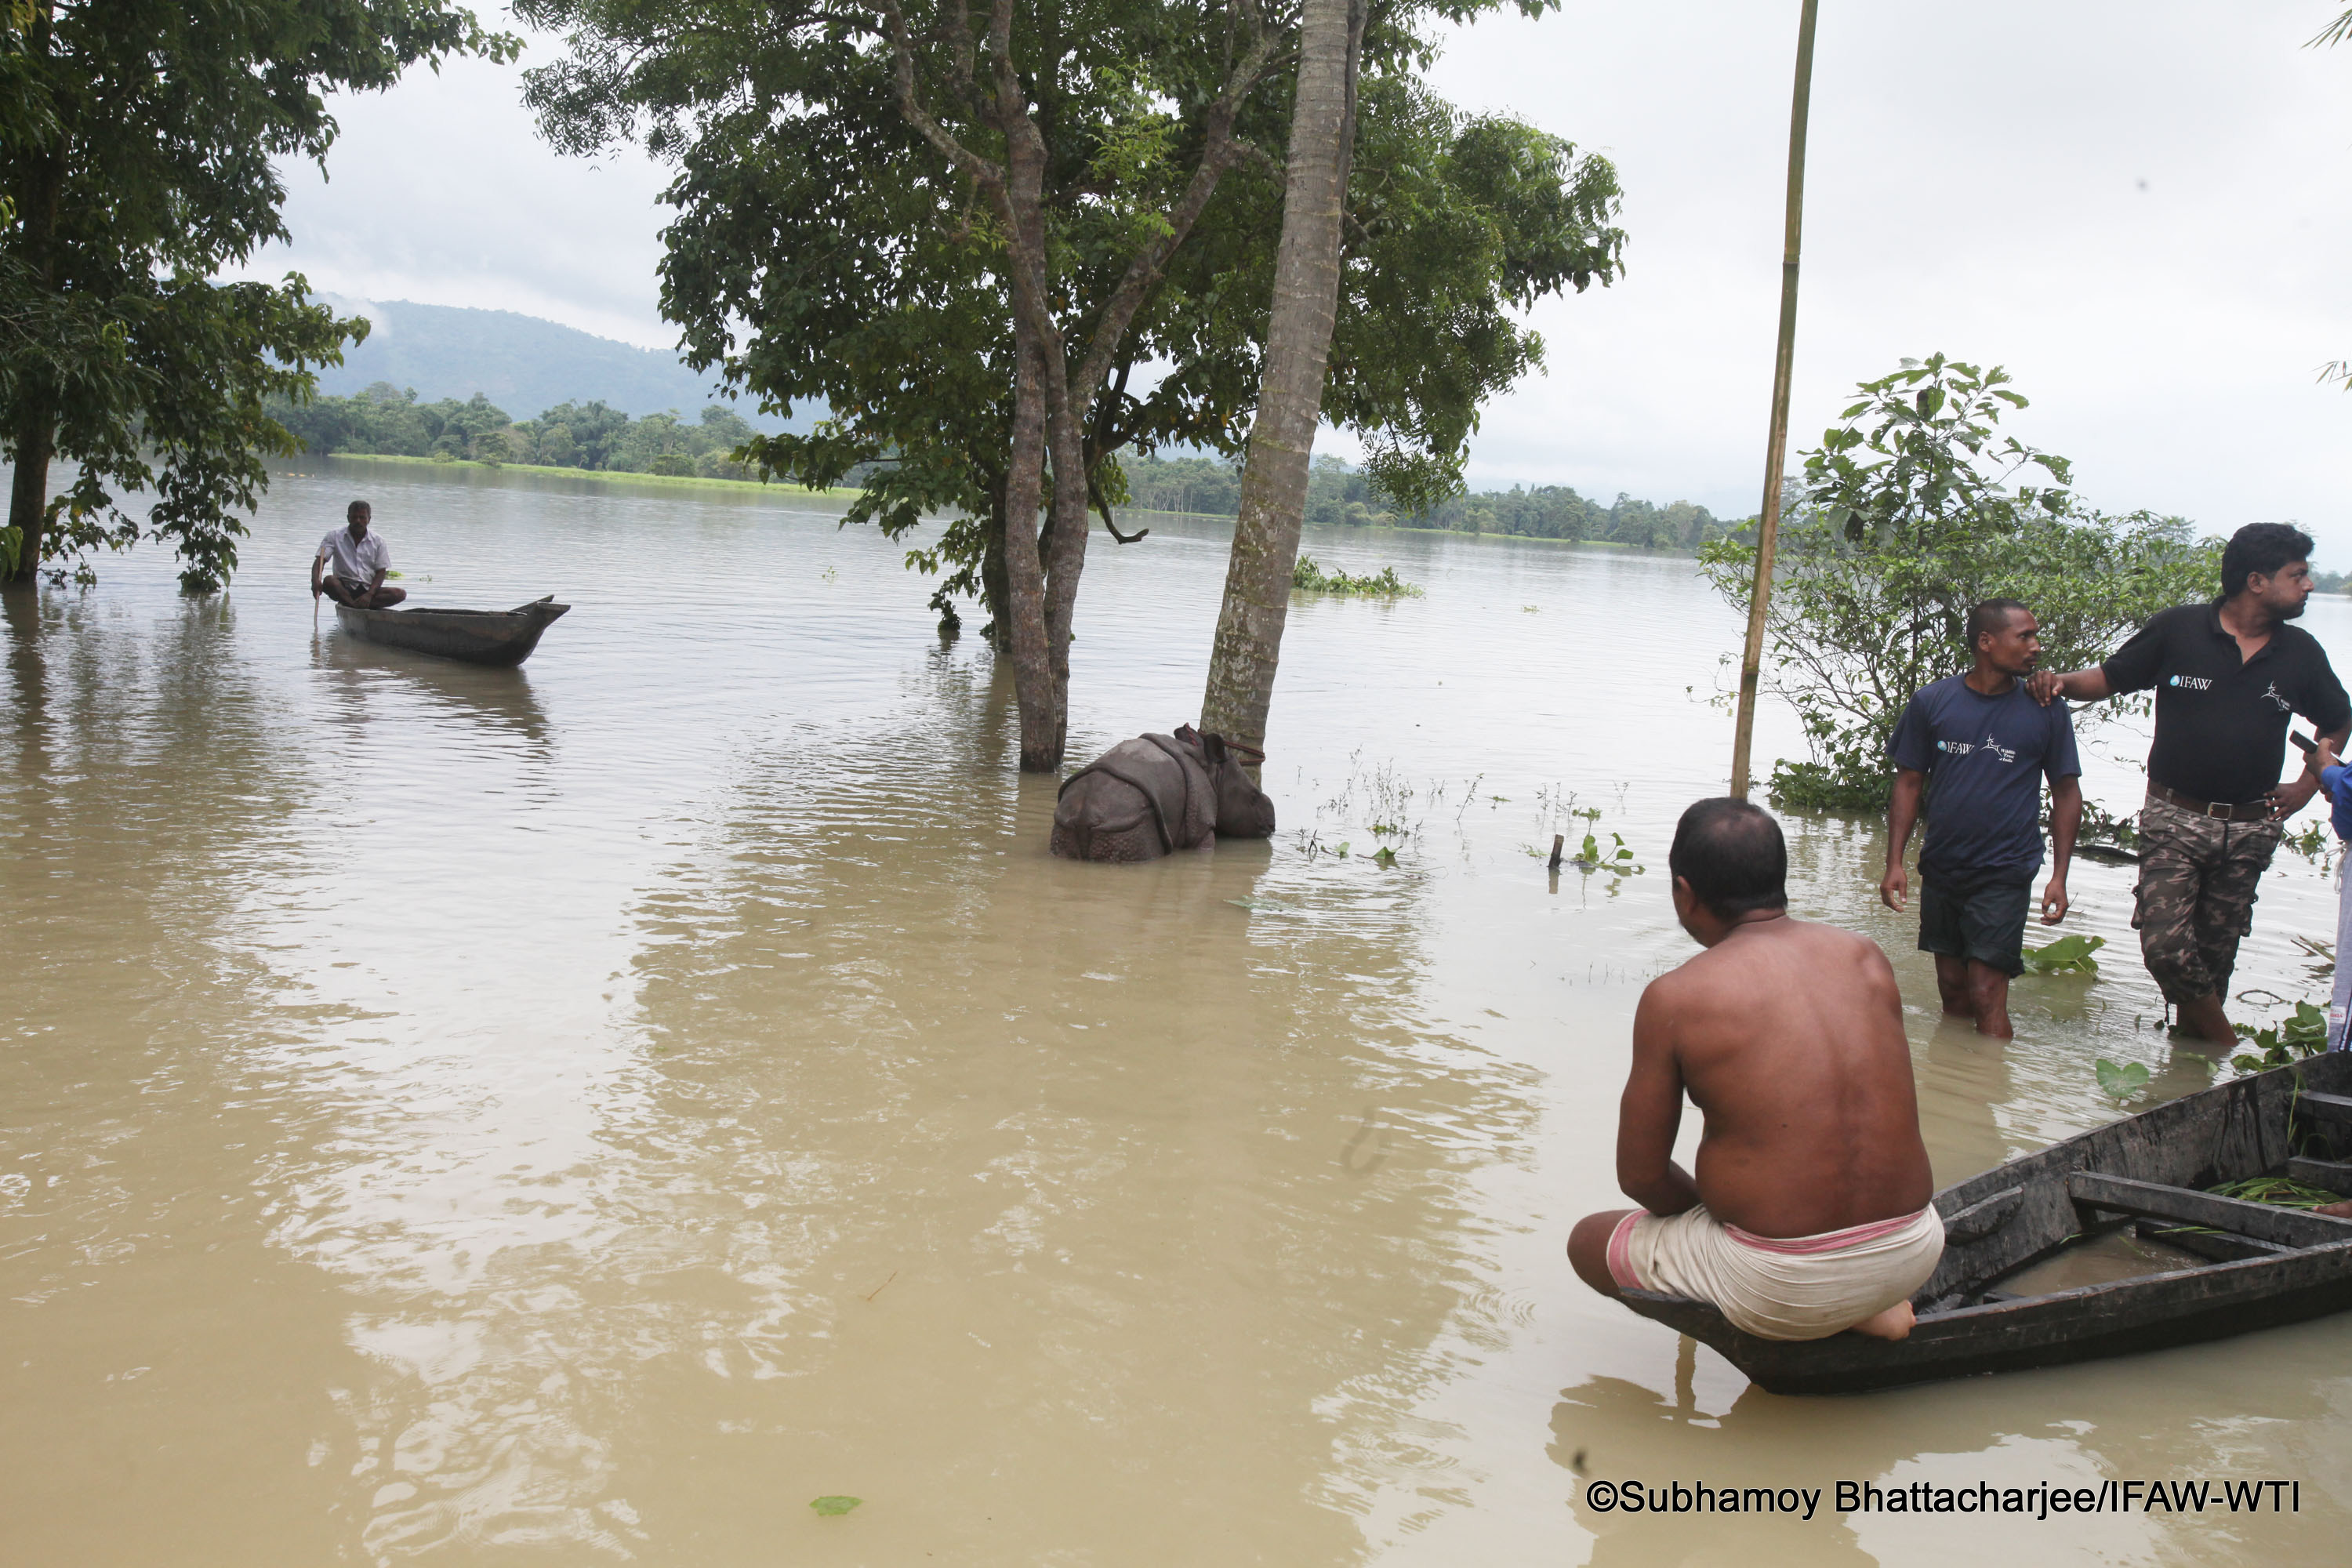 Kaziranga_27 jul 2016_flood status_rhino rescue_Subhamoy Bhattacharjee_IFAW-WTI (16)